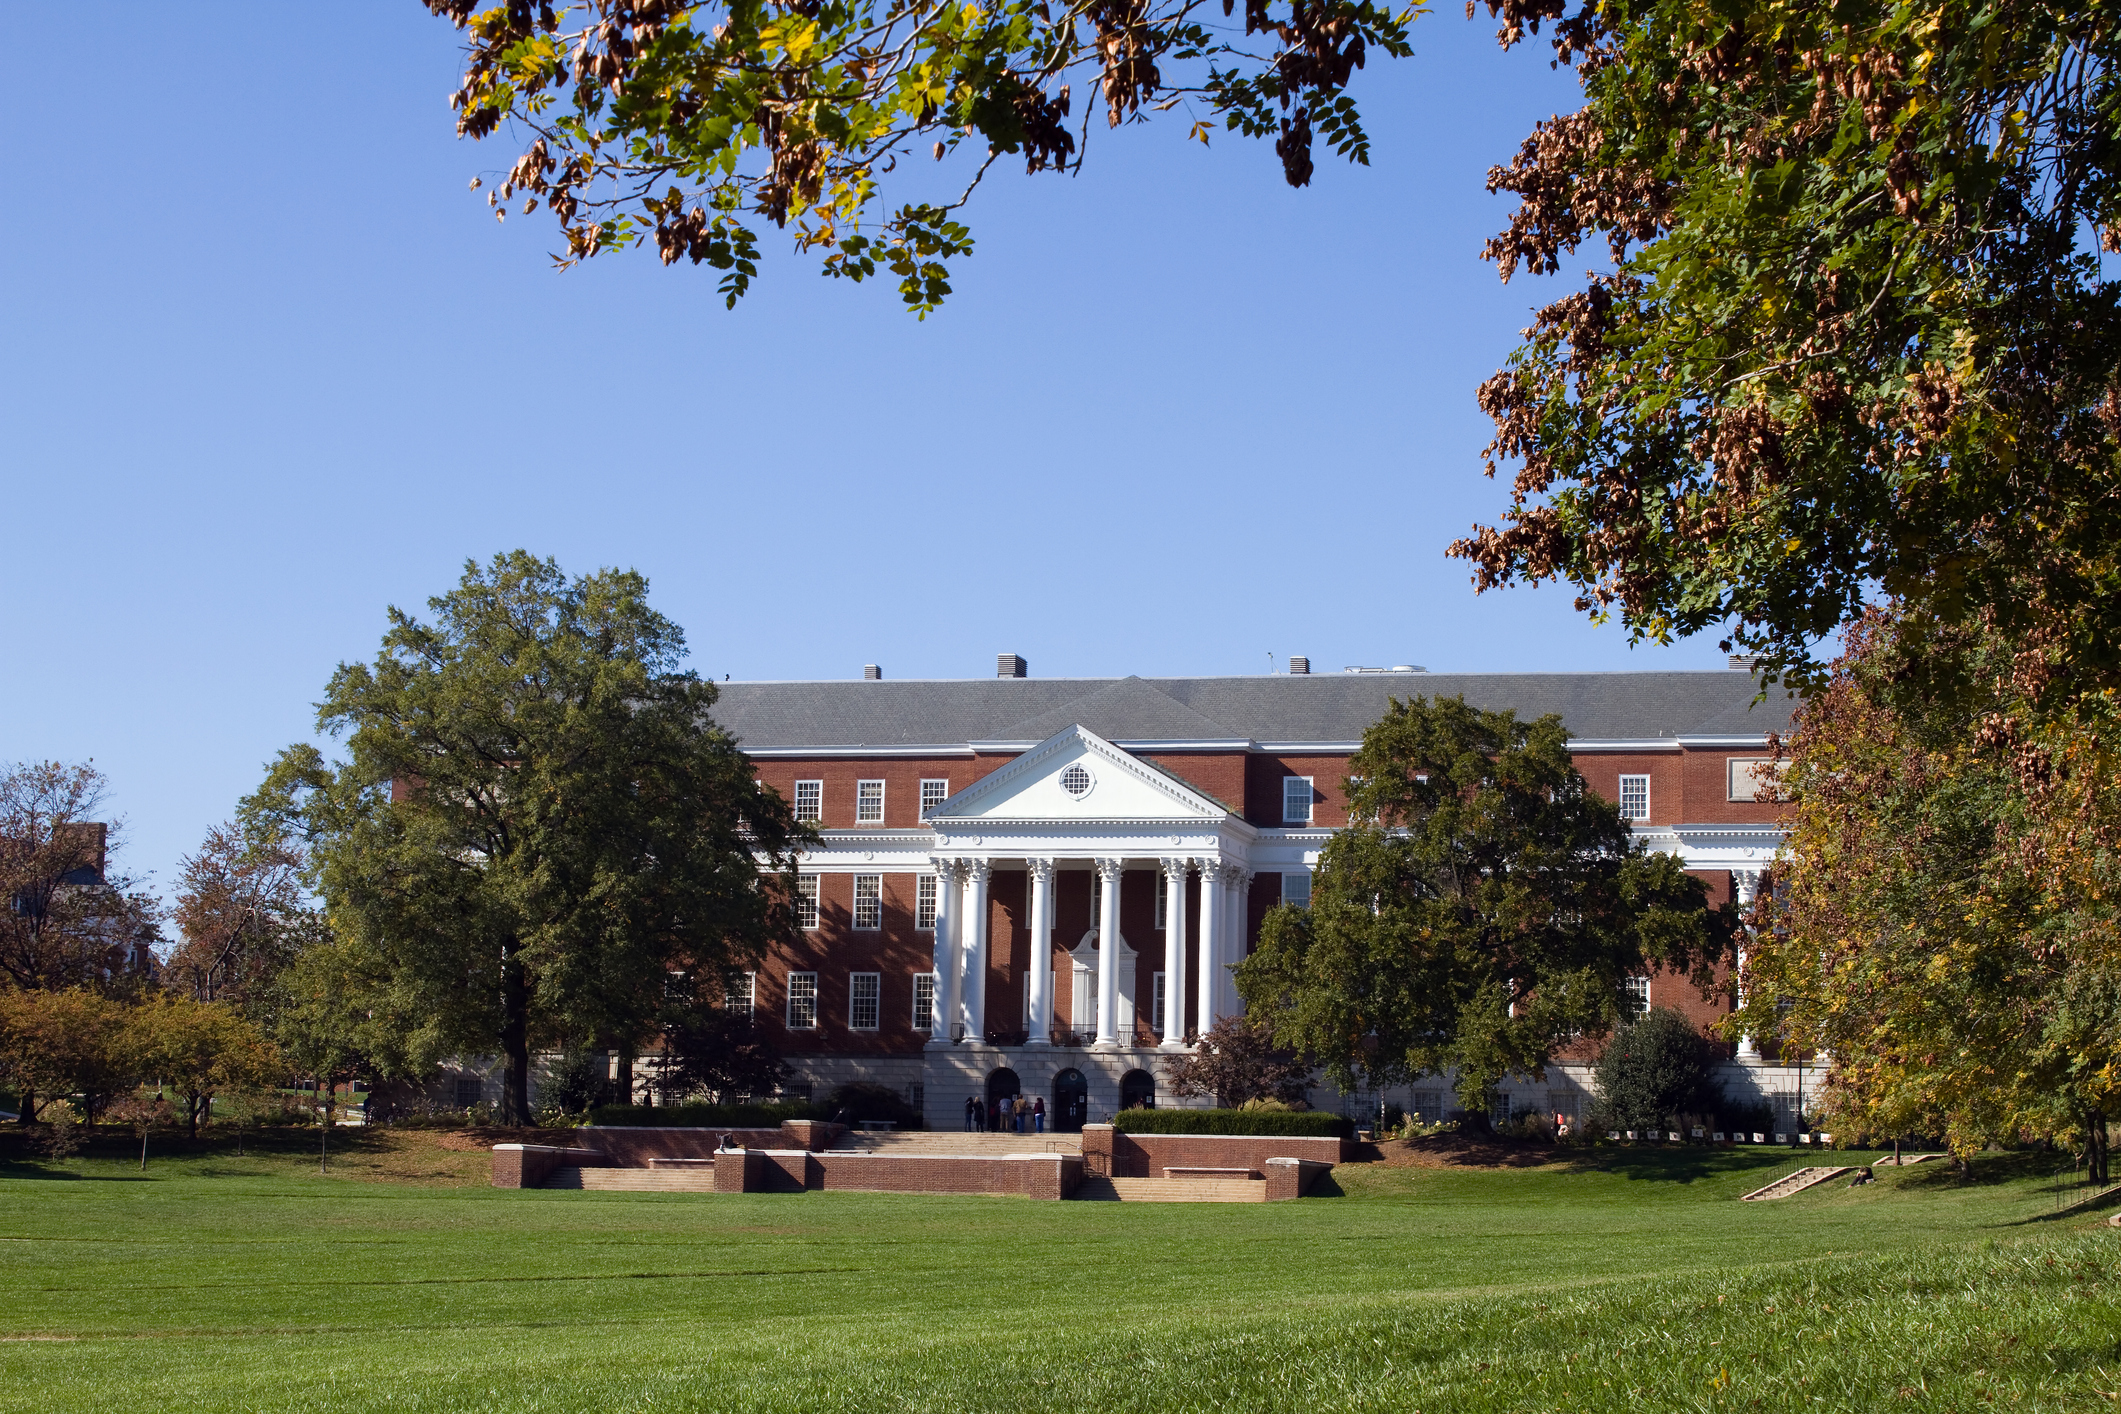 Library and campus of the University of Maryland located in College Park, MD.